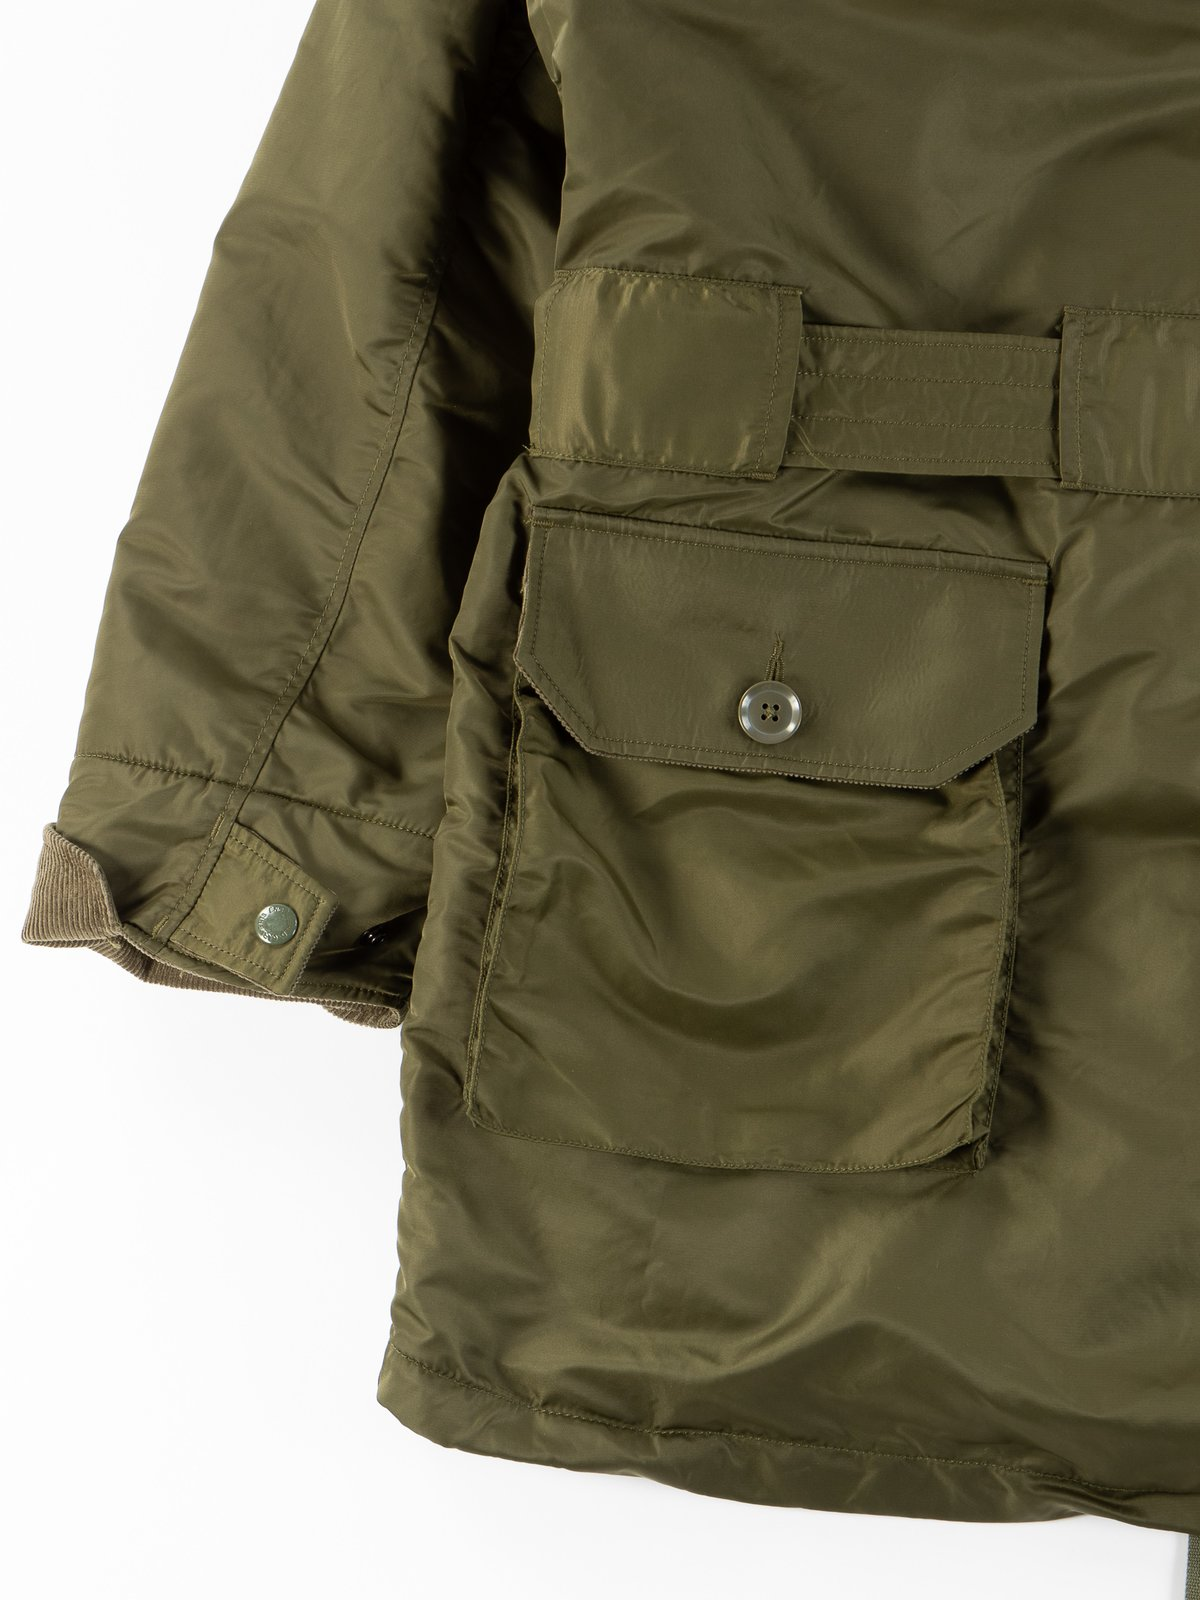 Olive Flight Satin Nylon Field Parka - Image 11